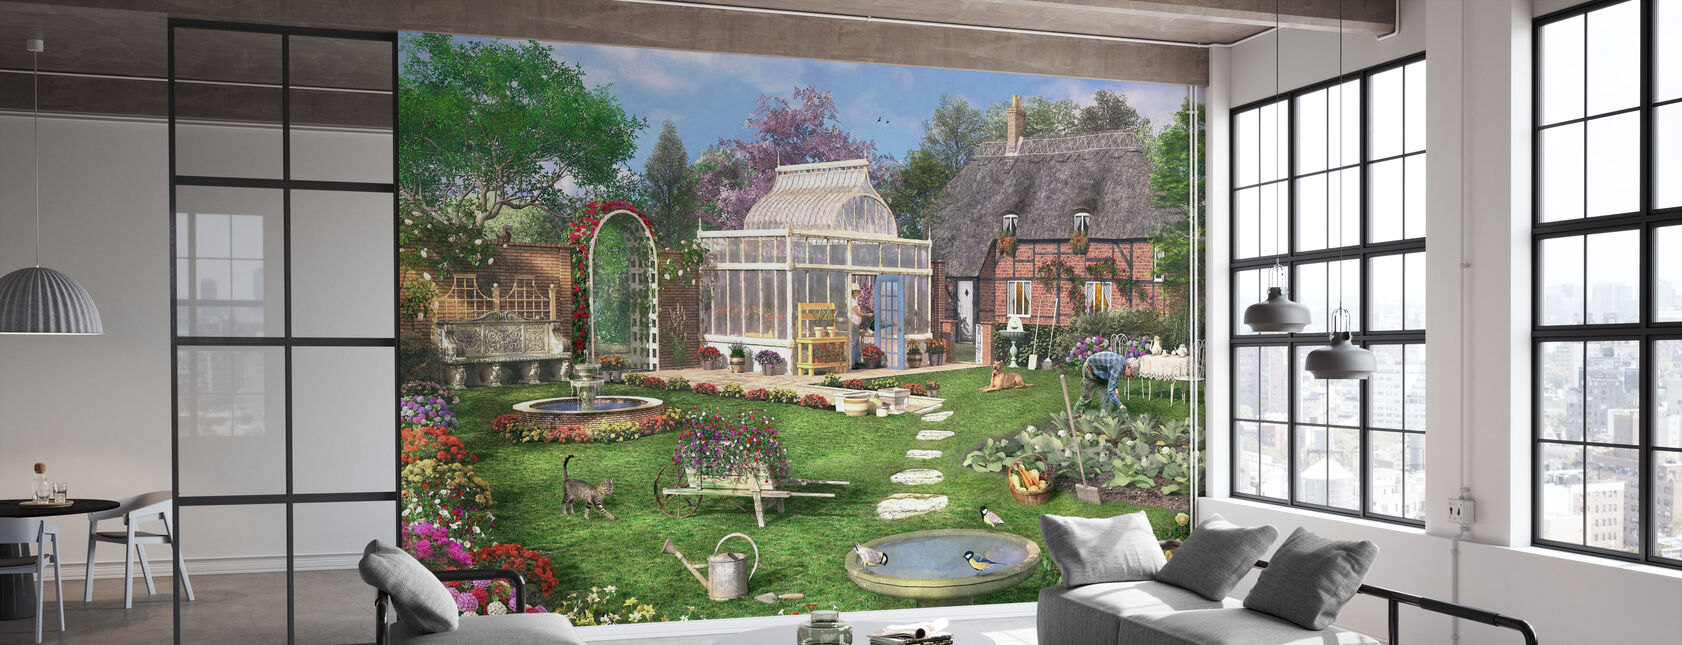 The Cottage Garden - Wallpaper - Office